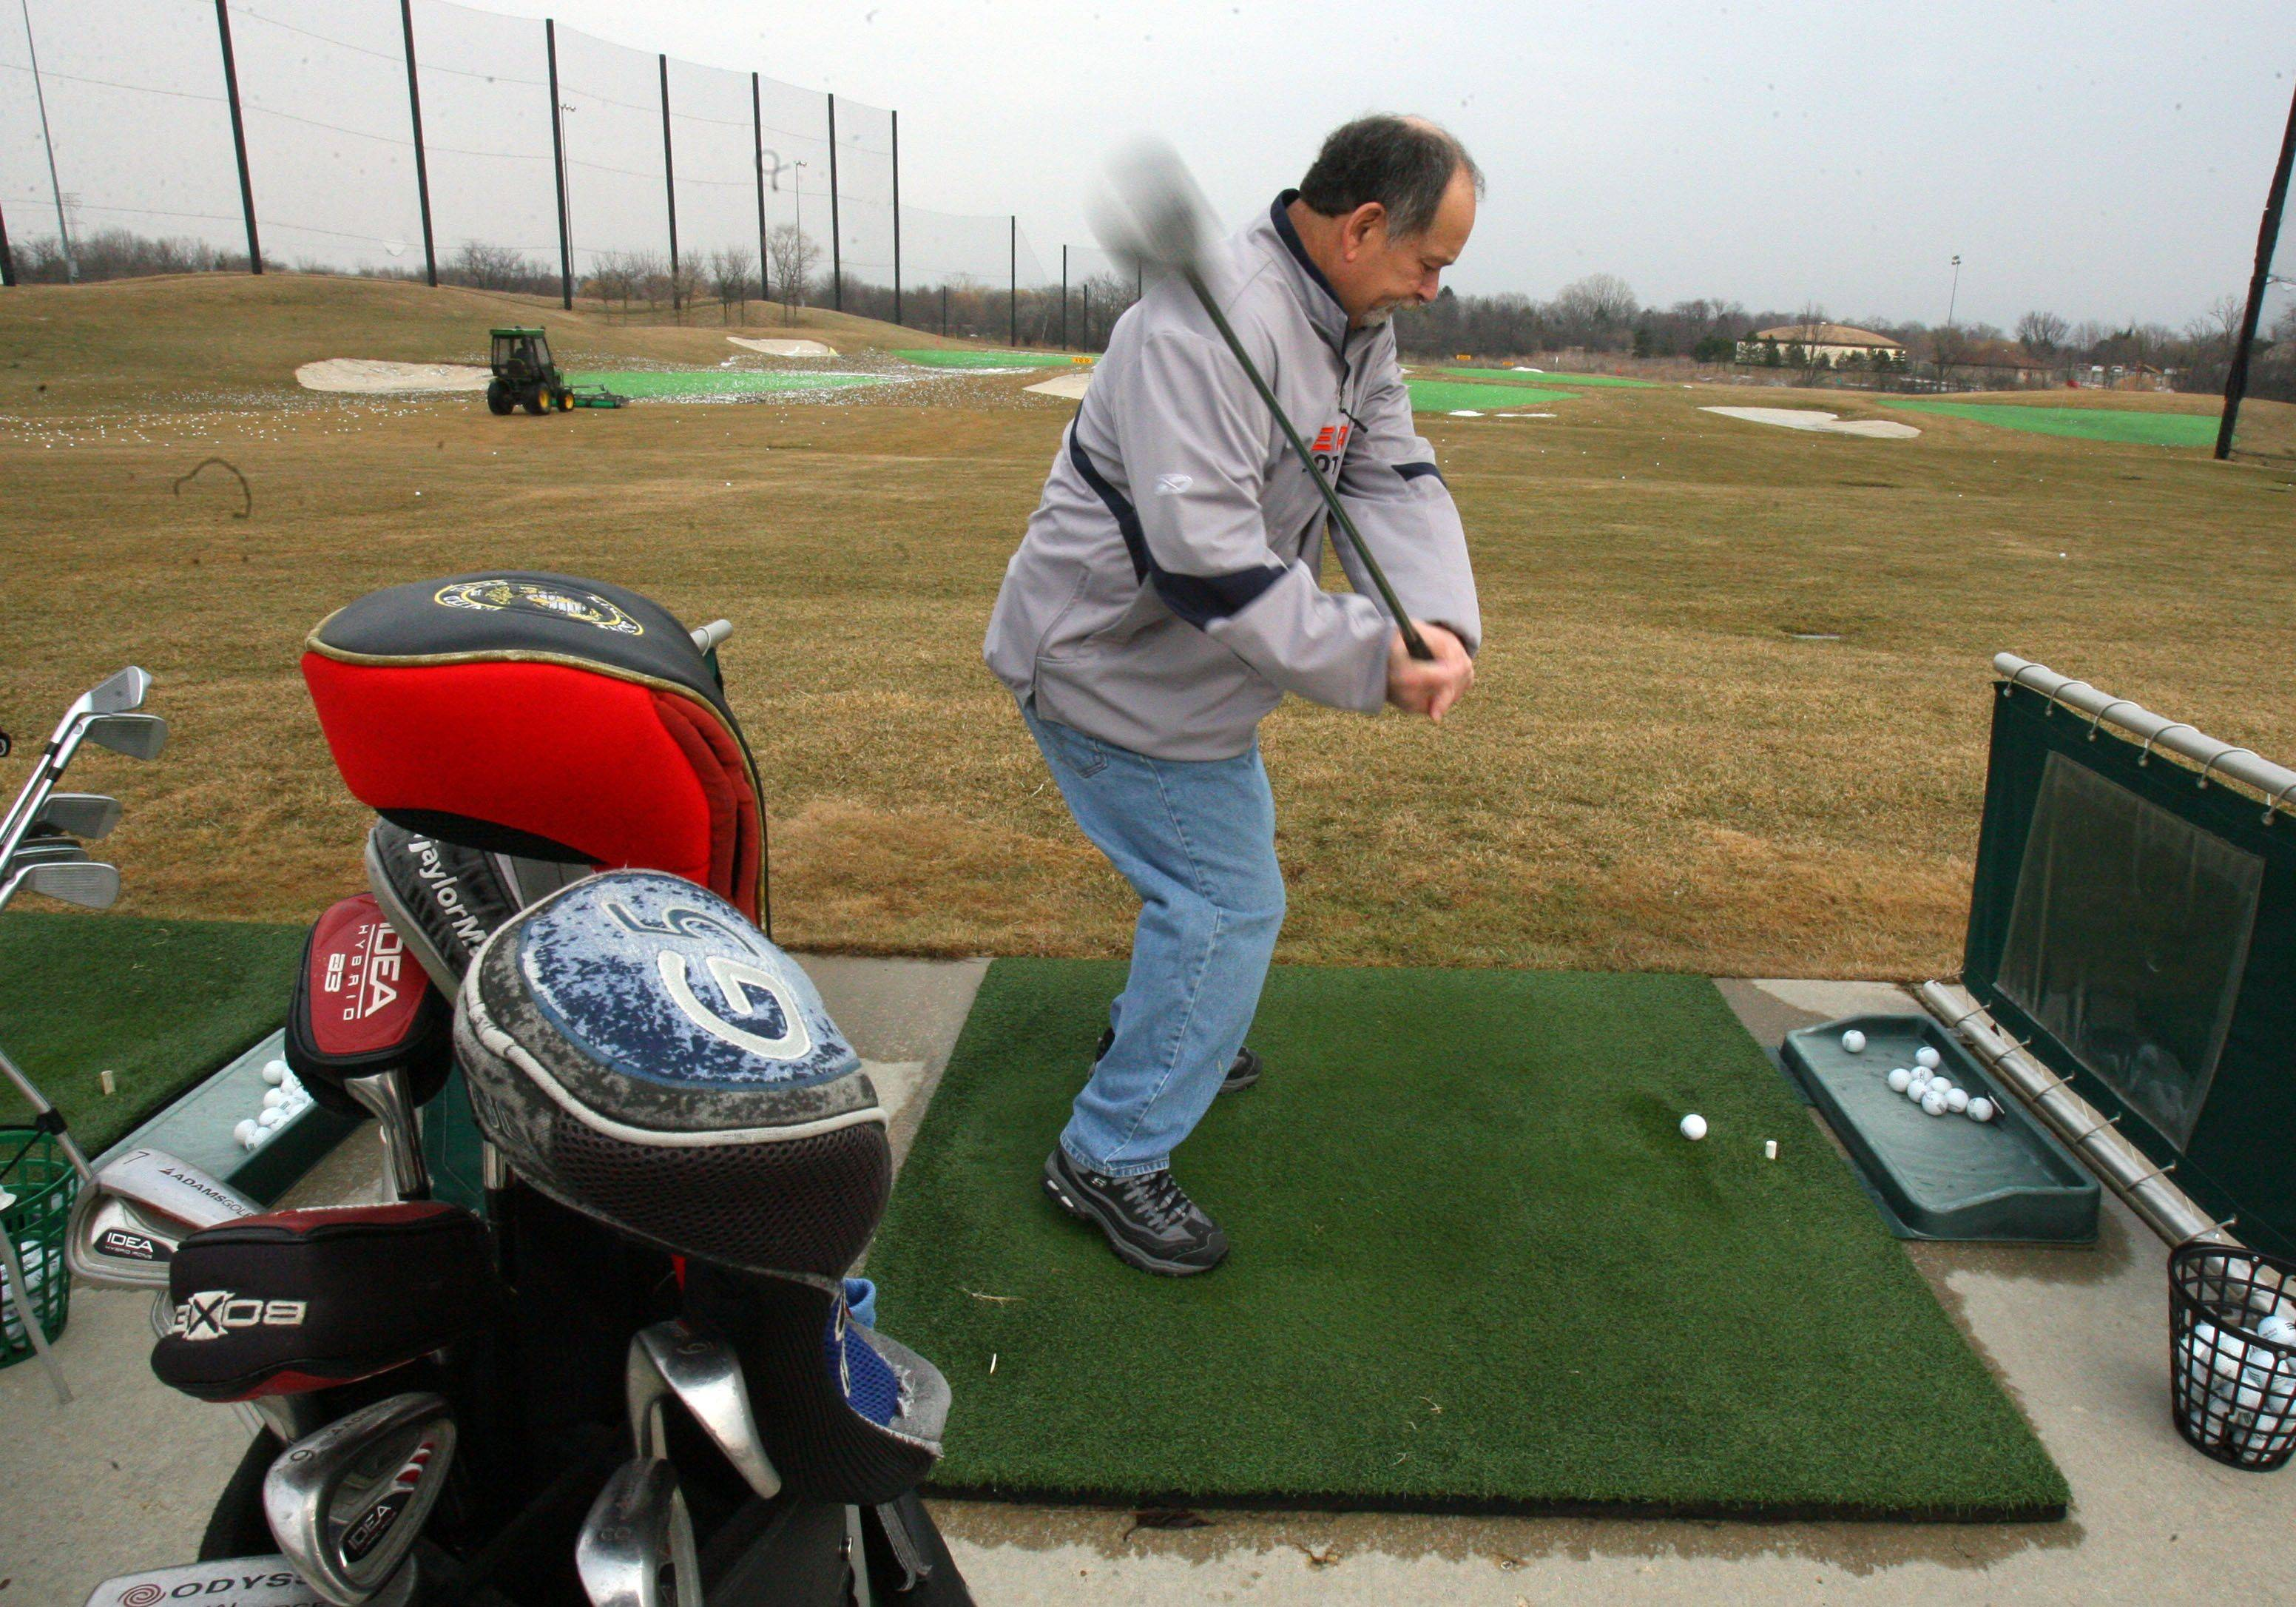 Curt Corsi of Gurnee takes advantage of temperatures in the 40's to hit some balls at the Libertville Sports Complex Friday afternoon.